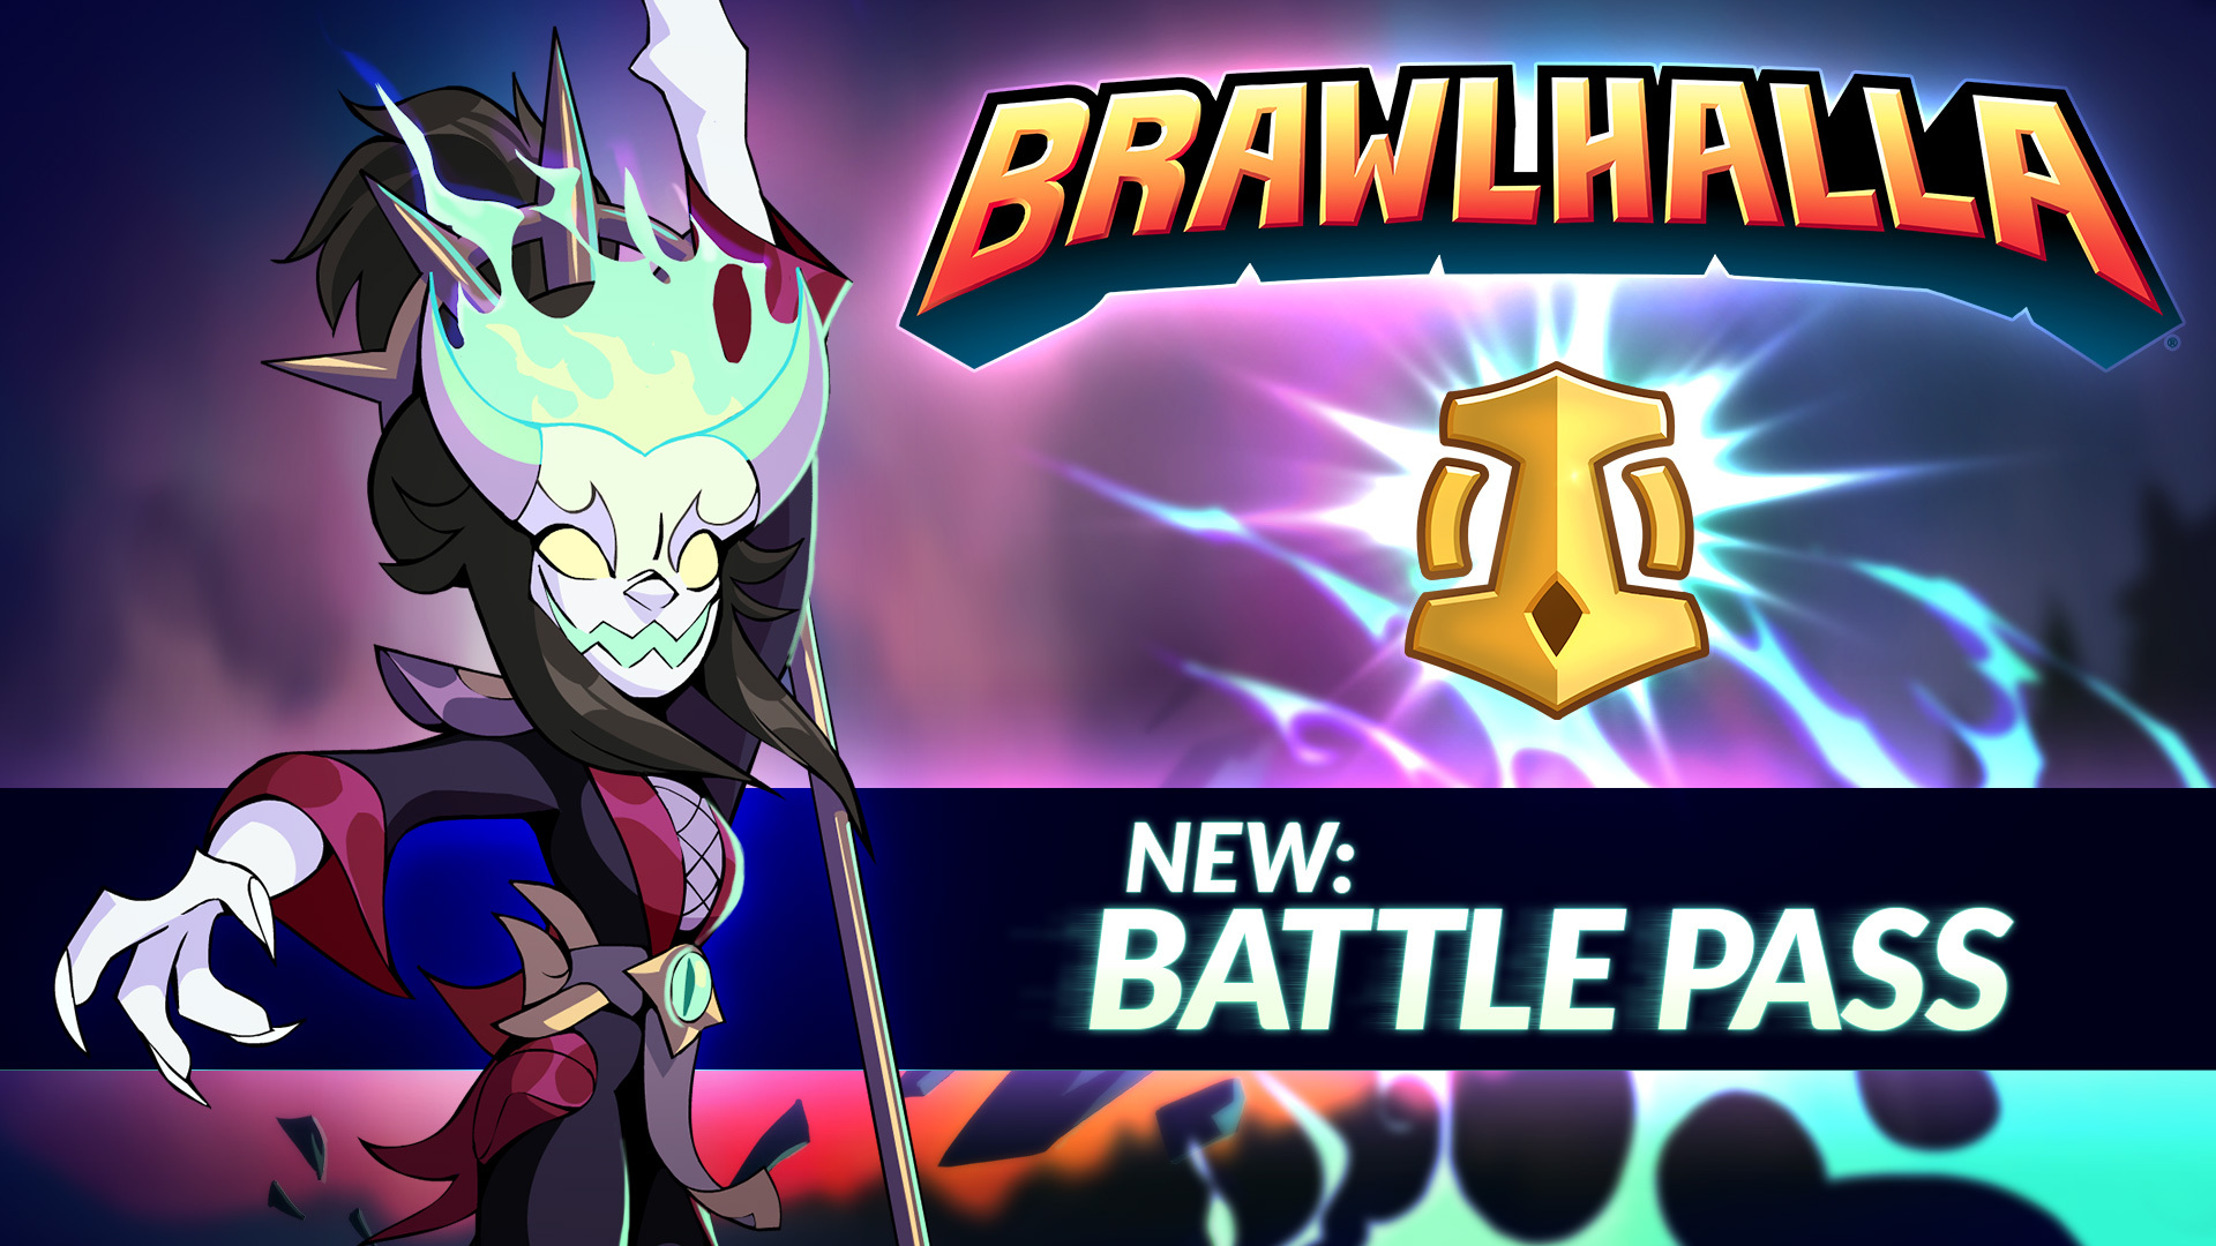 Preview: BRAWLHALLA BATTLE PASS AB SOFORT LIVE